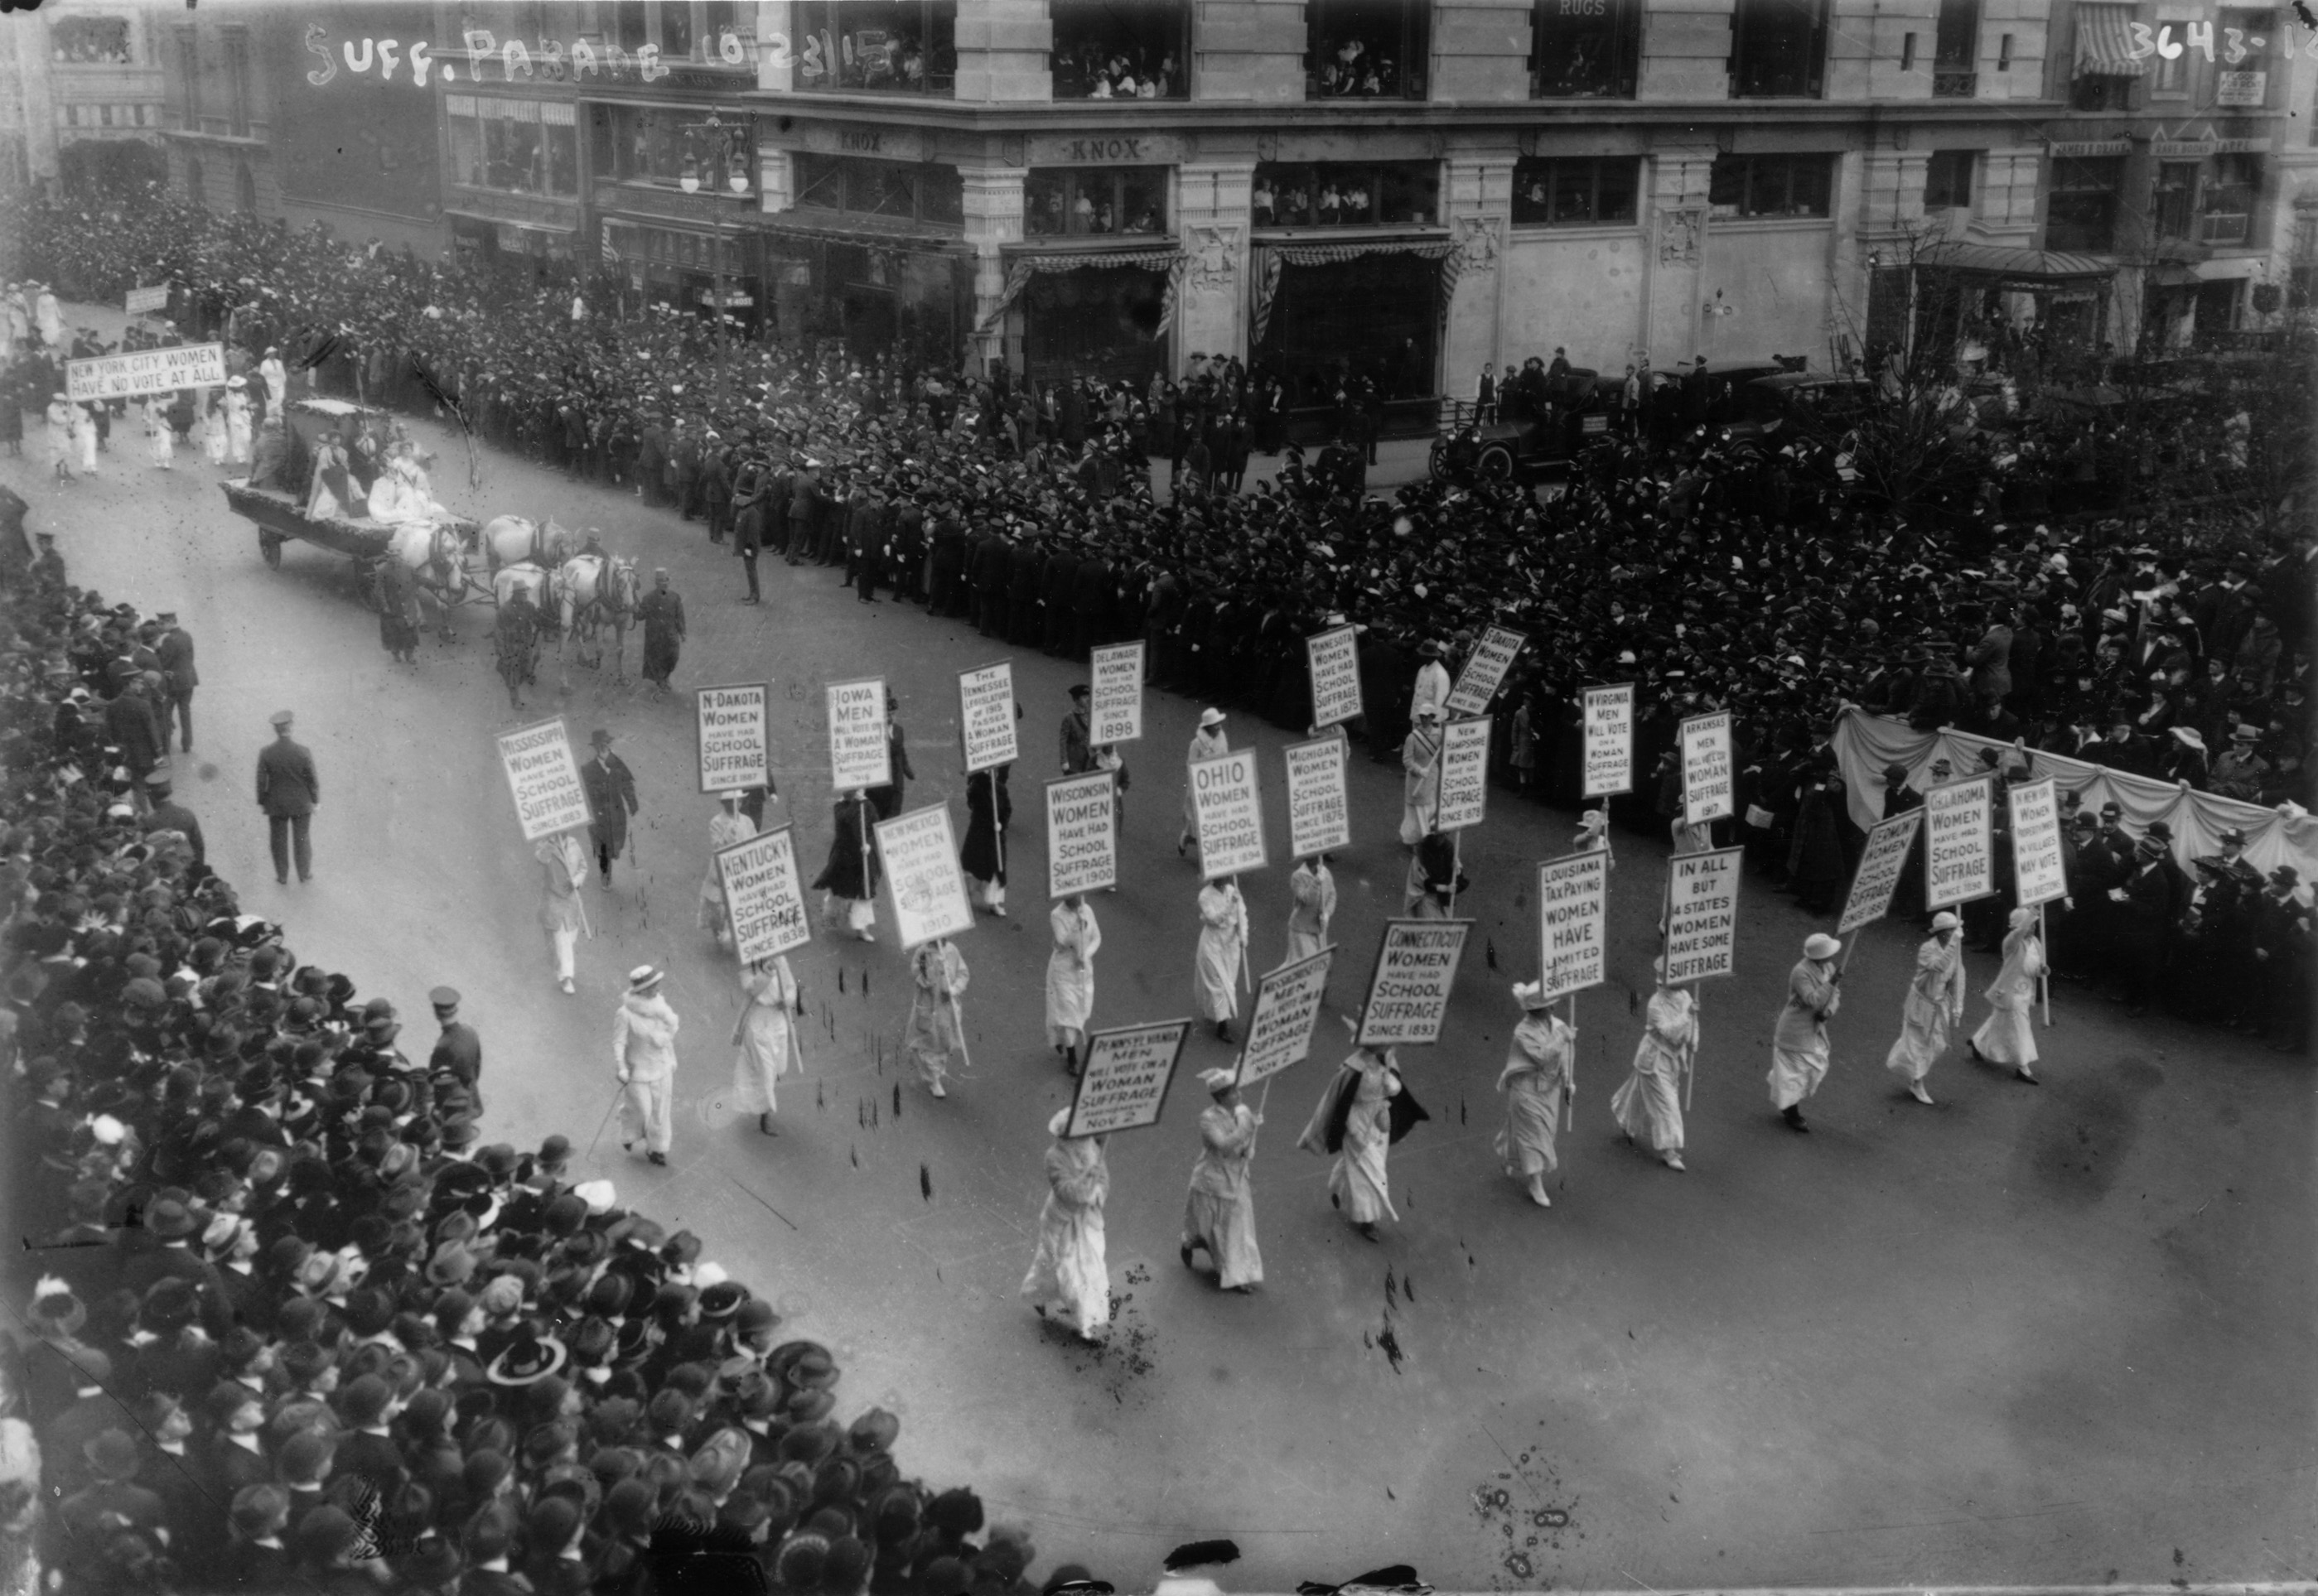 1915 Suffrage march